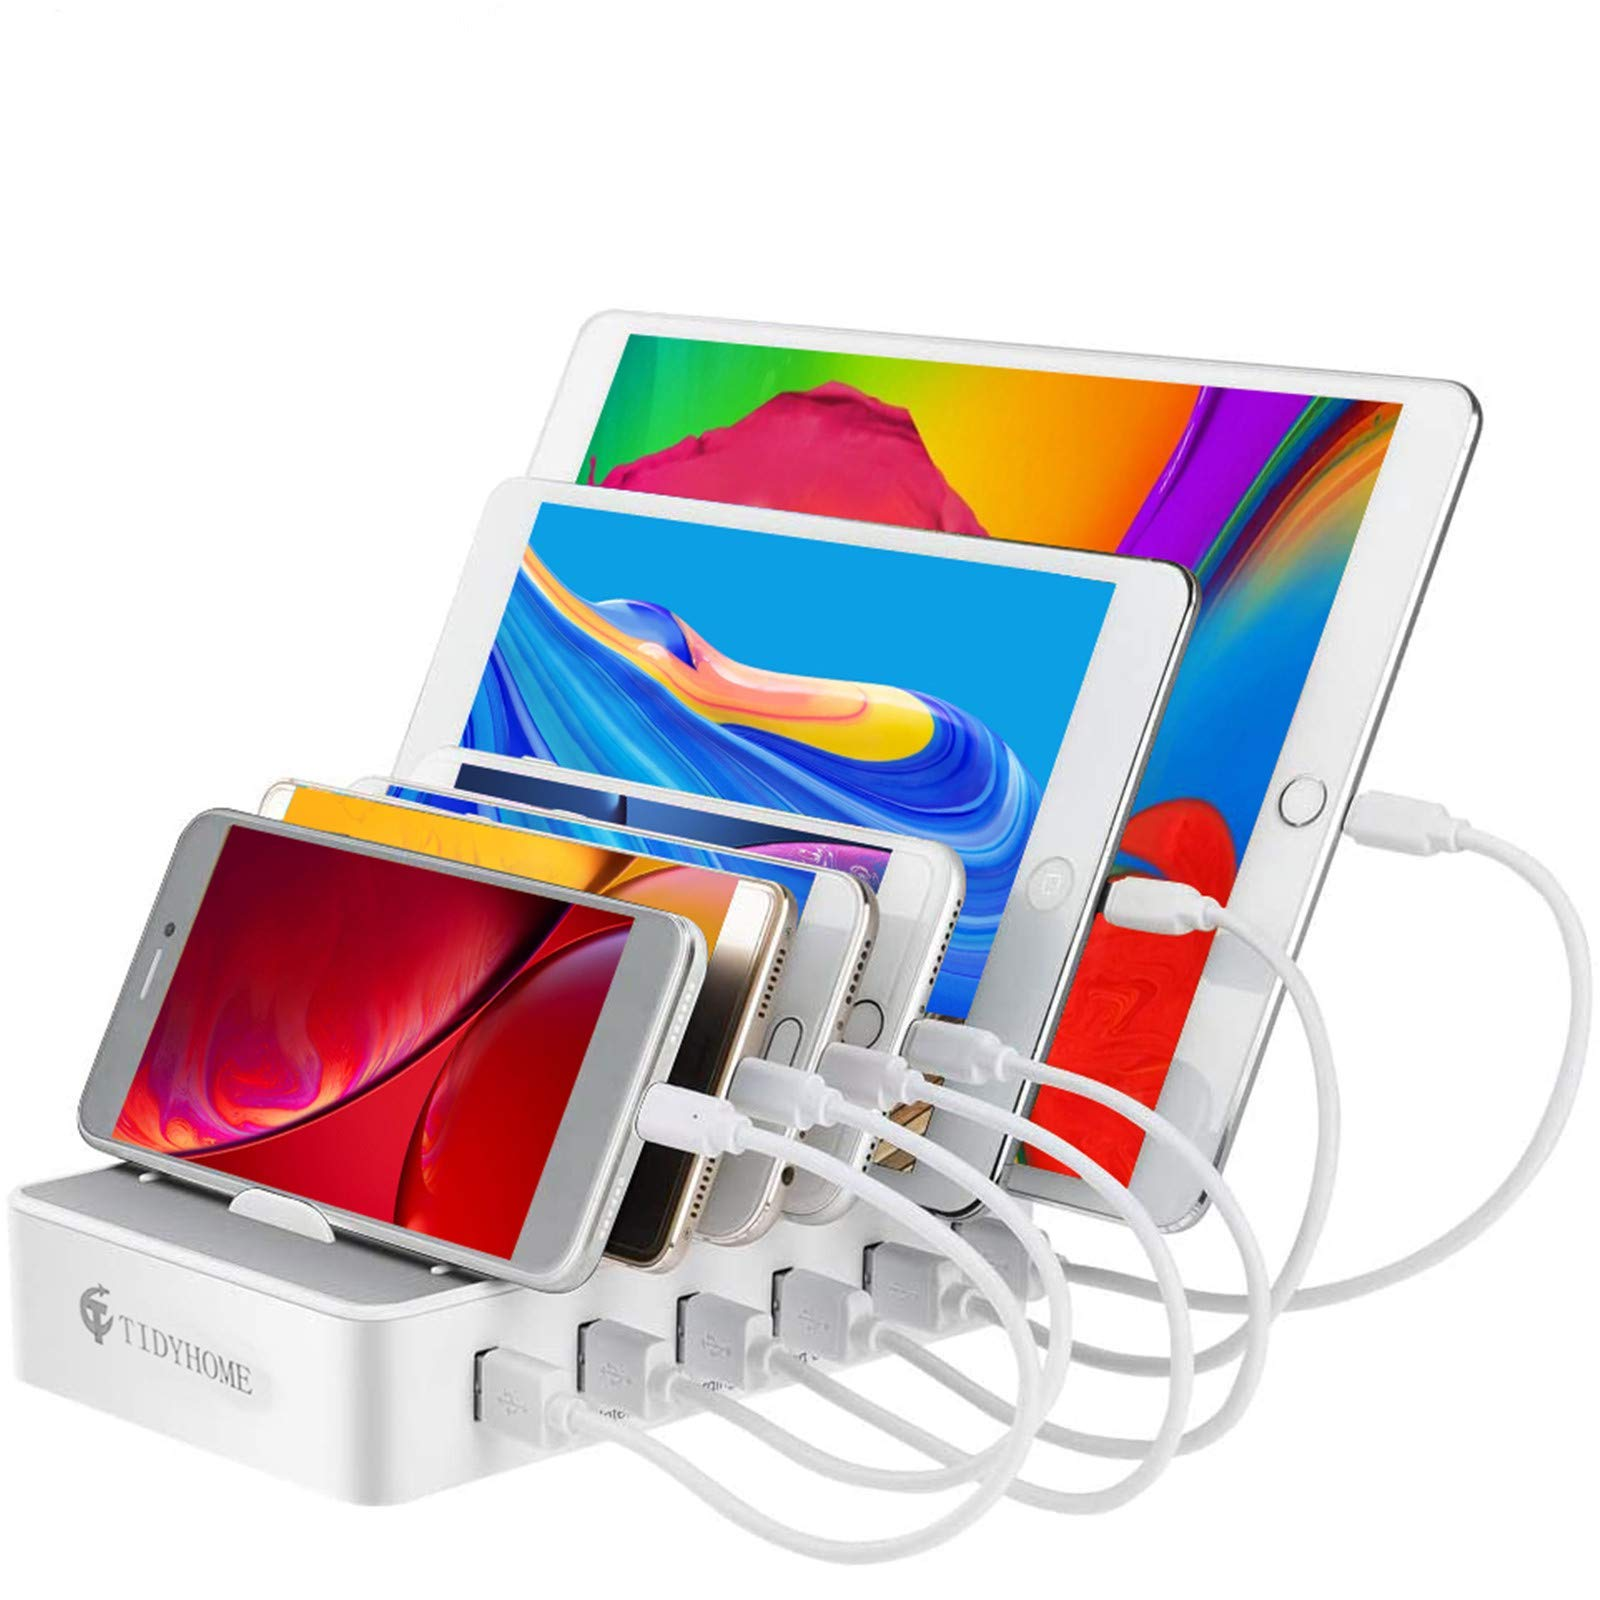 Charging Station for Multiple Devices 6 USB Fast Ports and 6 Mixed